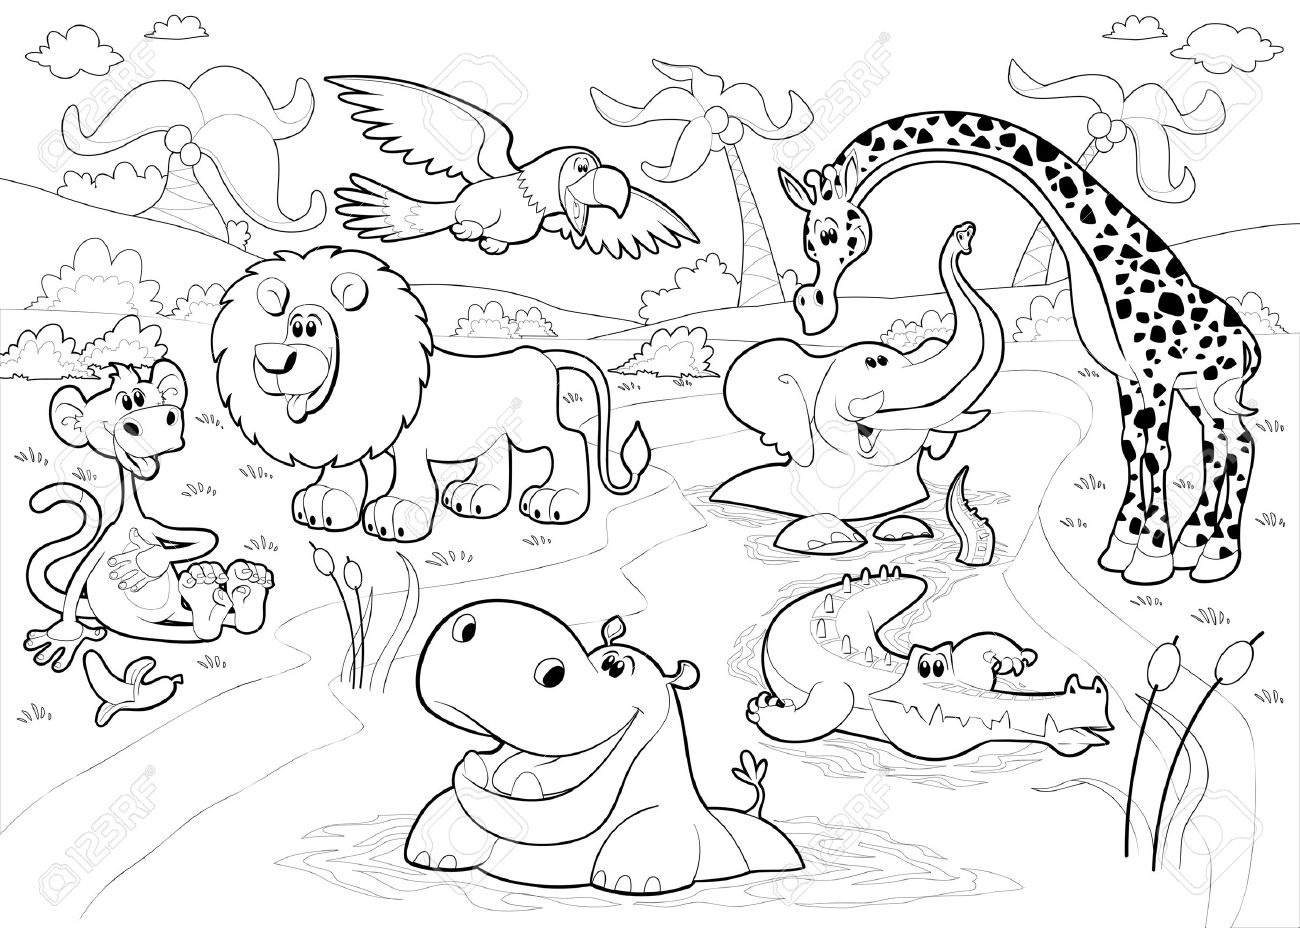 Jungle animals clipart black and white 3 » Clipart Station